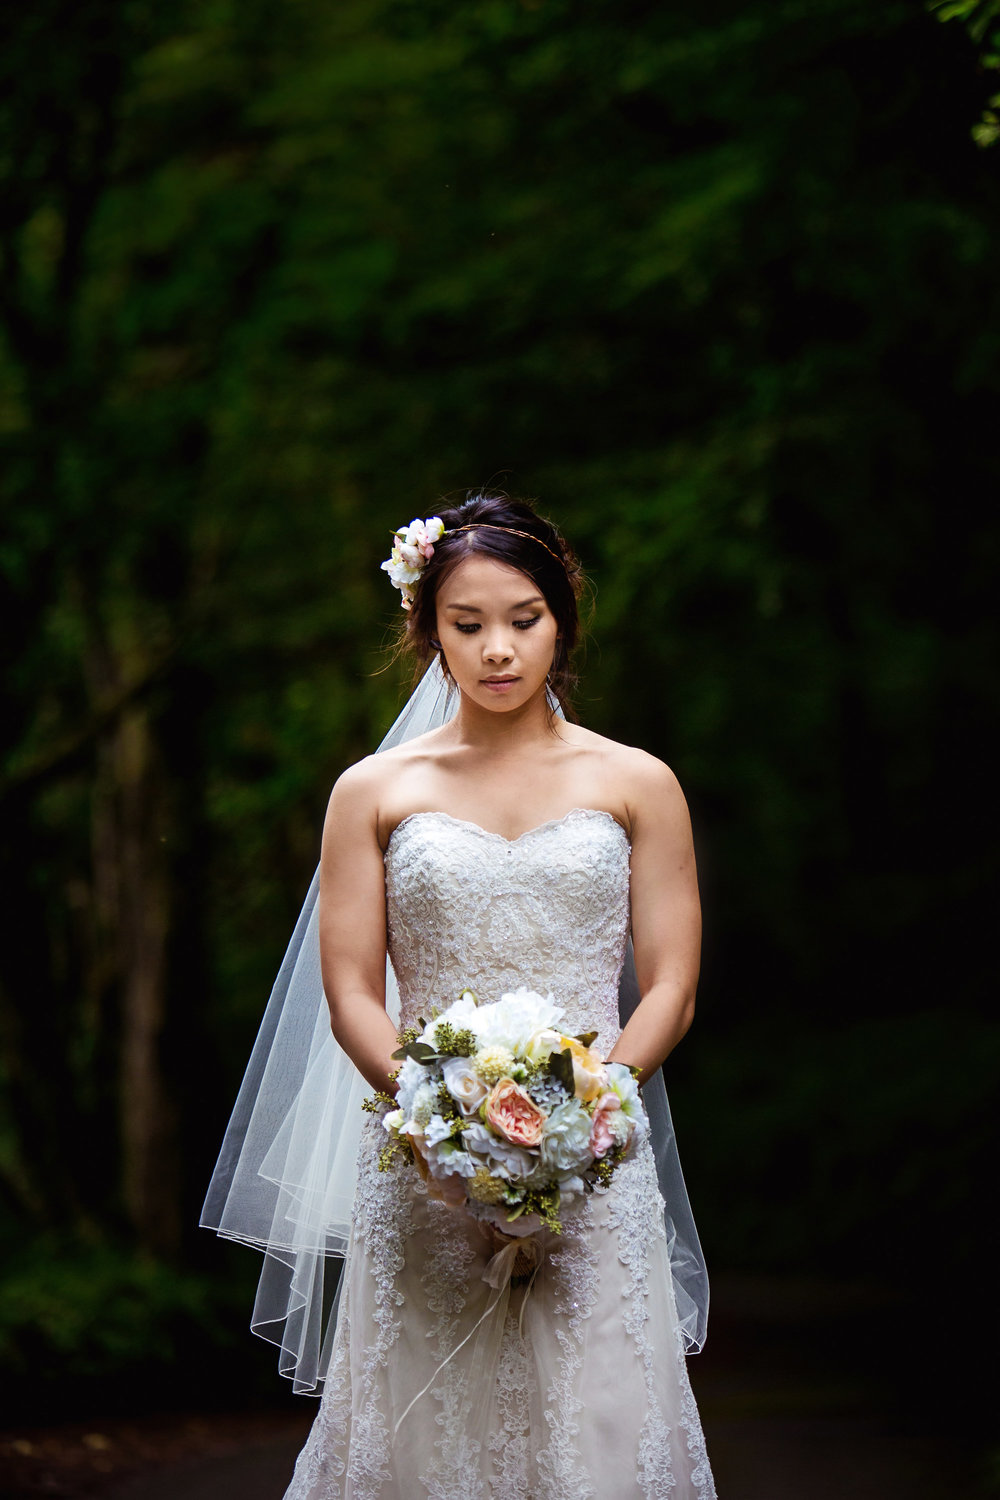 Skibbereen, West Cork Wedding. Beautiful White Wedding Dress with lace and flowers. Lough Hyne wedding photos by David Casey Photography